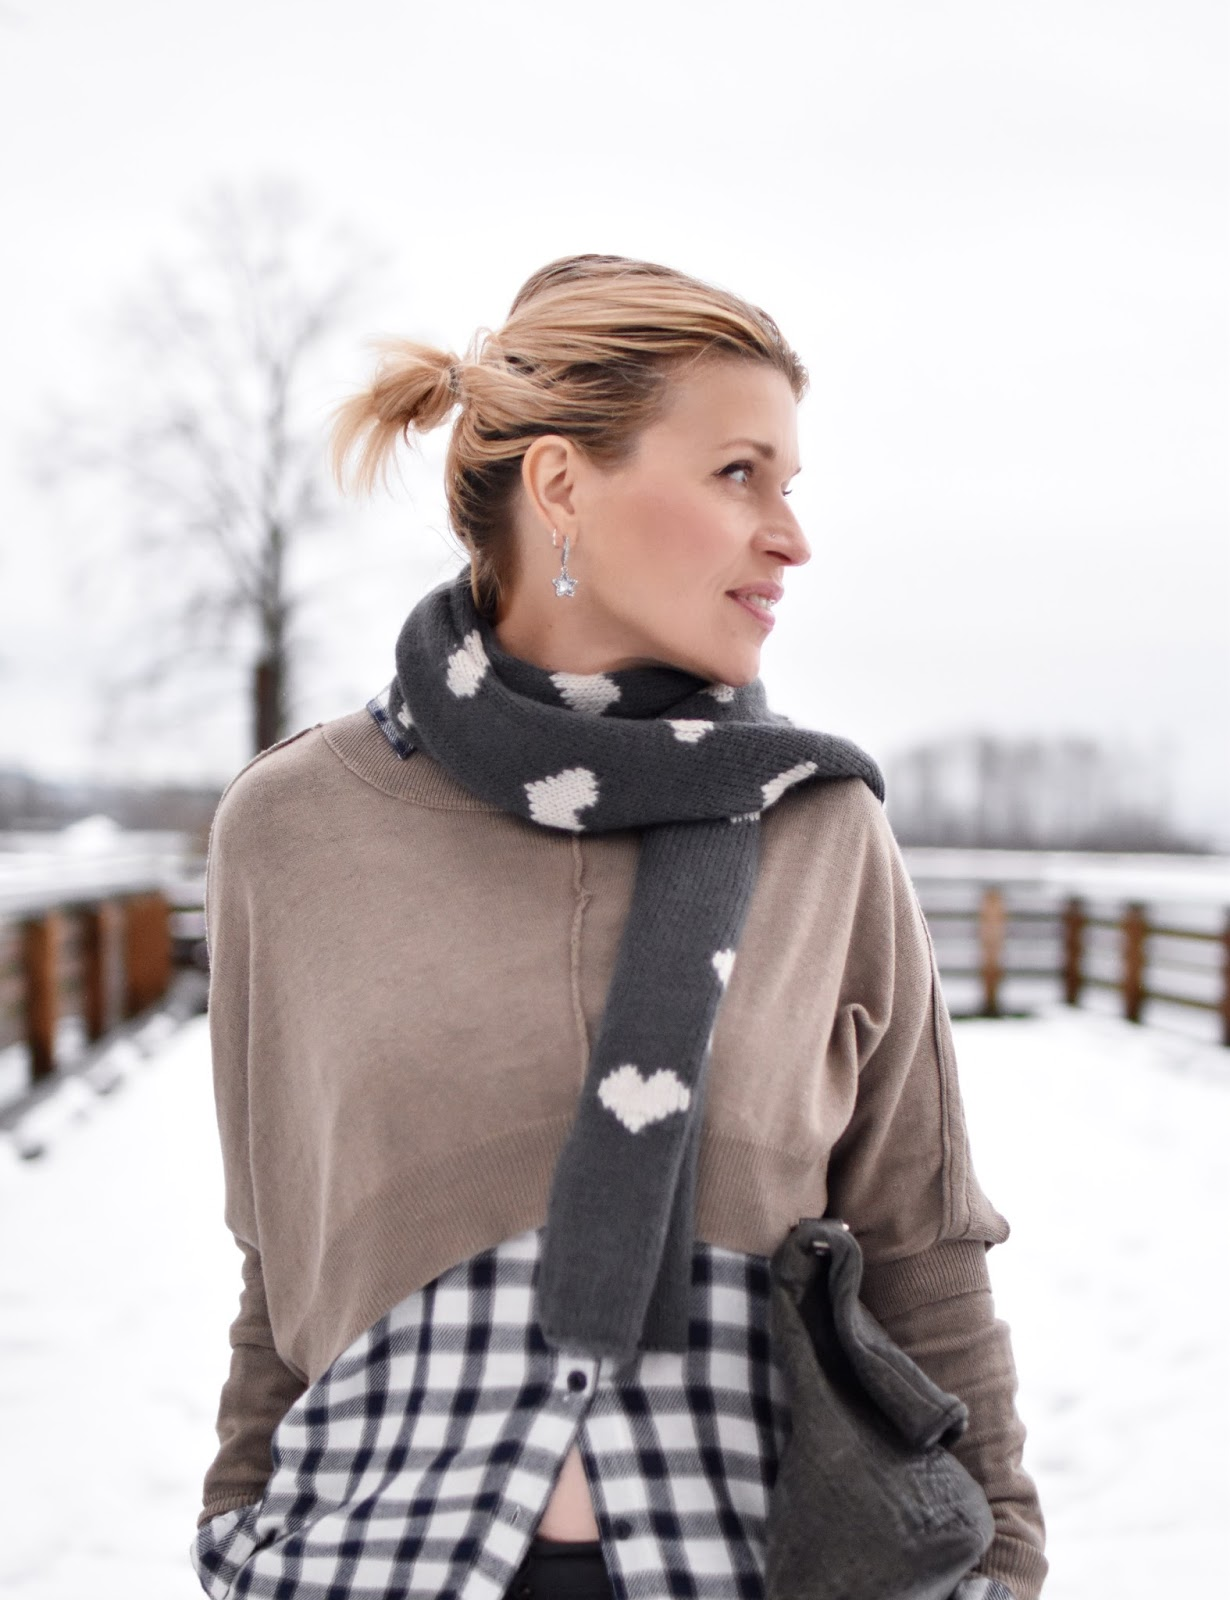 Monika Faulkner outfit inspiration - plaid flannel shirt, shrug-style sweater, heart-patterned scarf, slate blue satchel